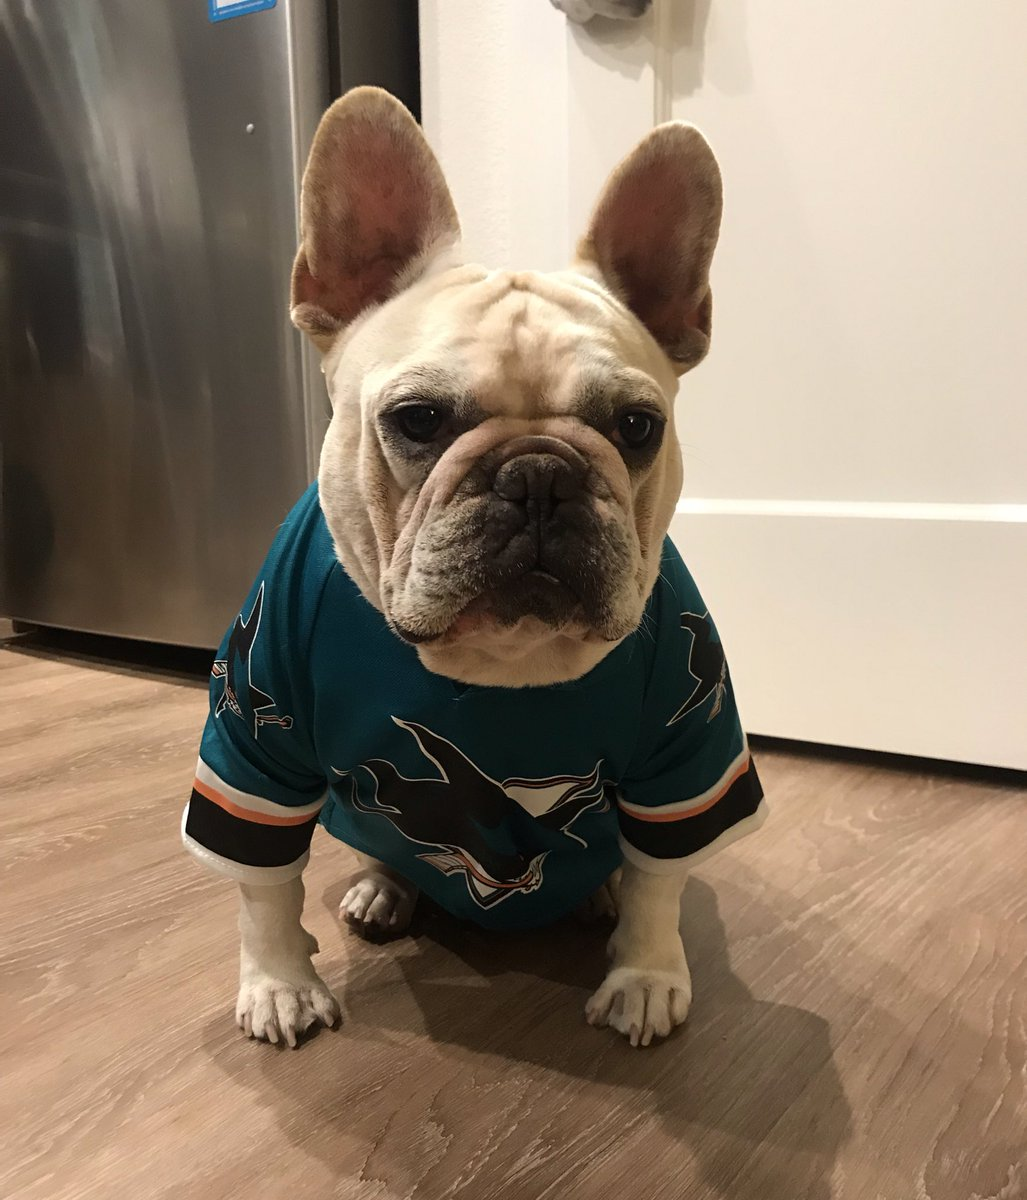 When you FINALLY find a @SanJoseSharks jersey they fits your dog. He is thrilled! #SJSharks  #SharksForLife <br>http://pic.twitter.com/agQ6WyuagR